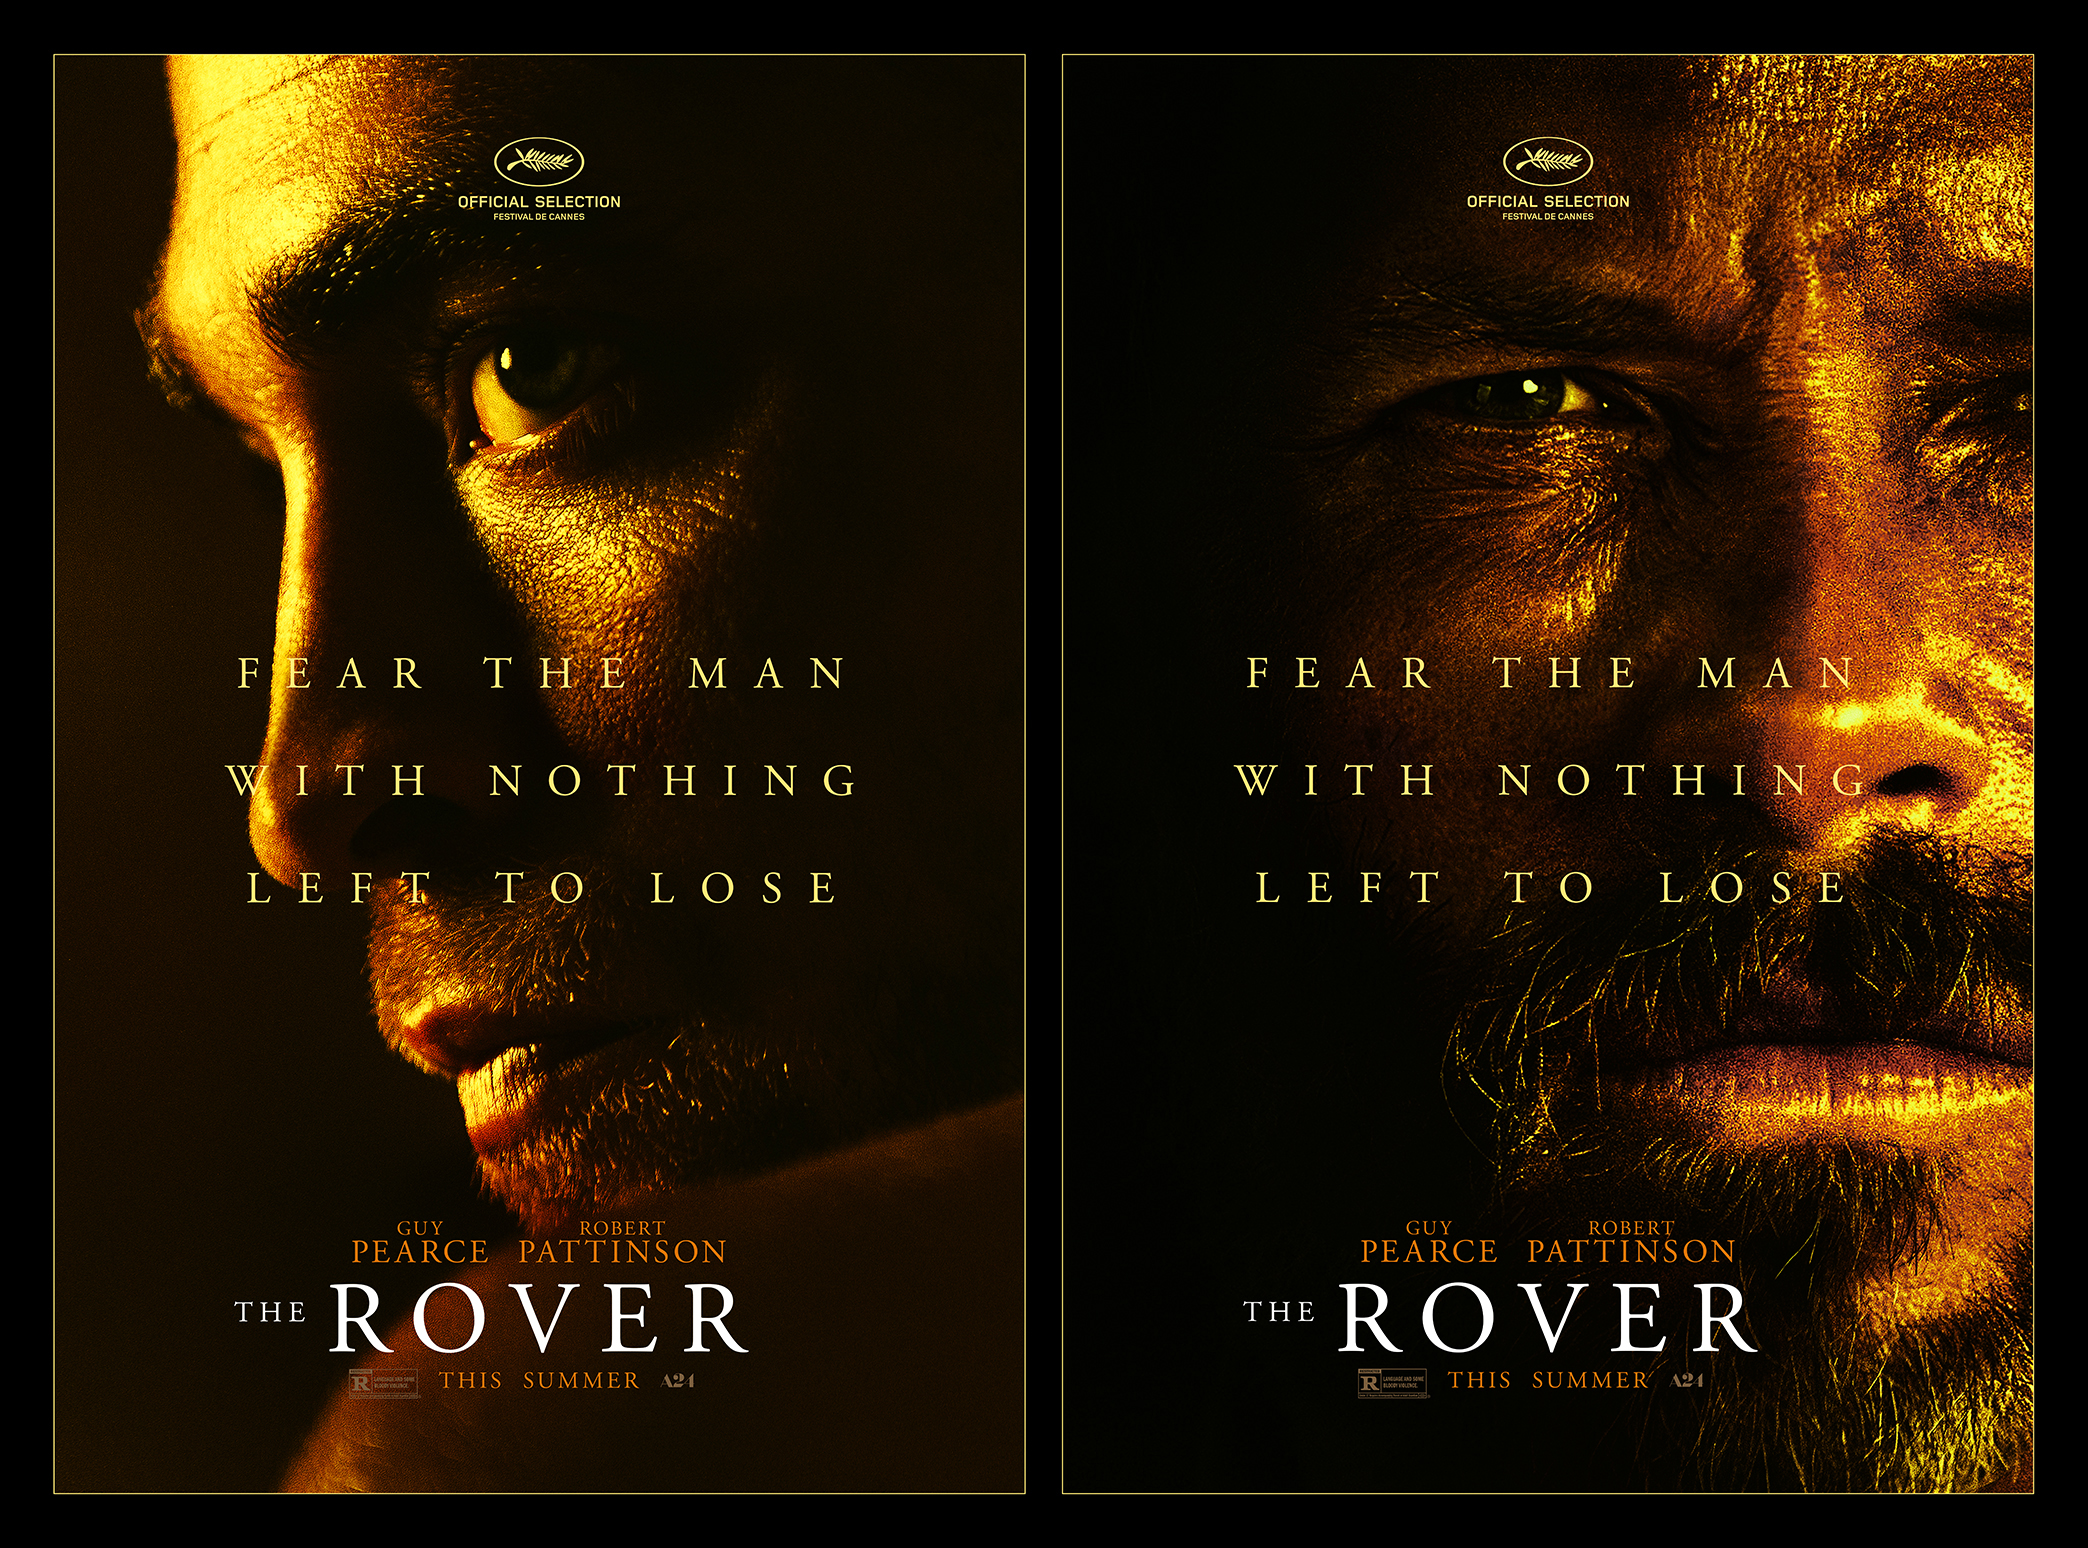 New Trailer & Character Posters for THE ROVER